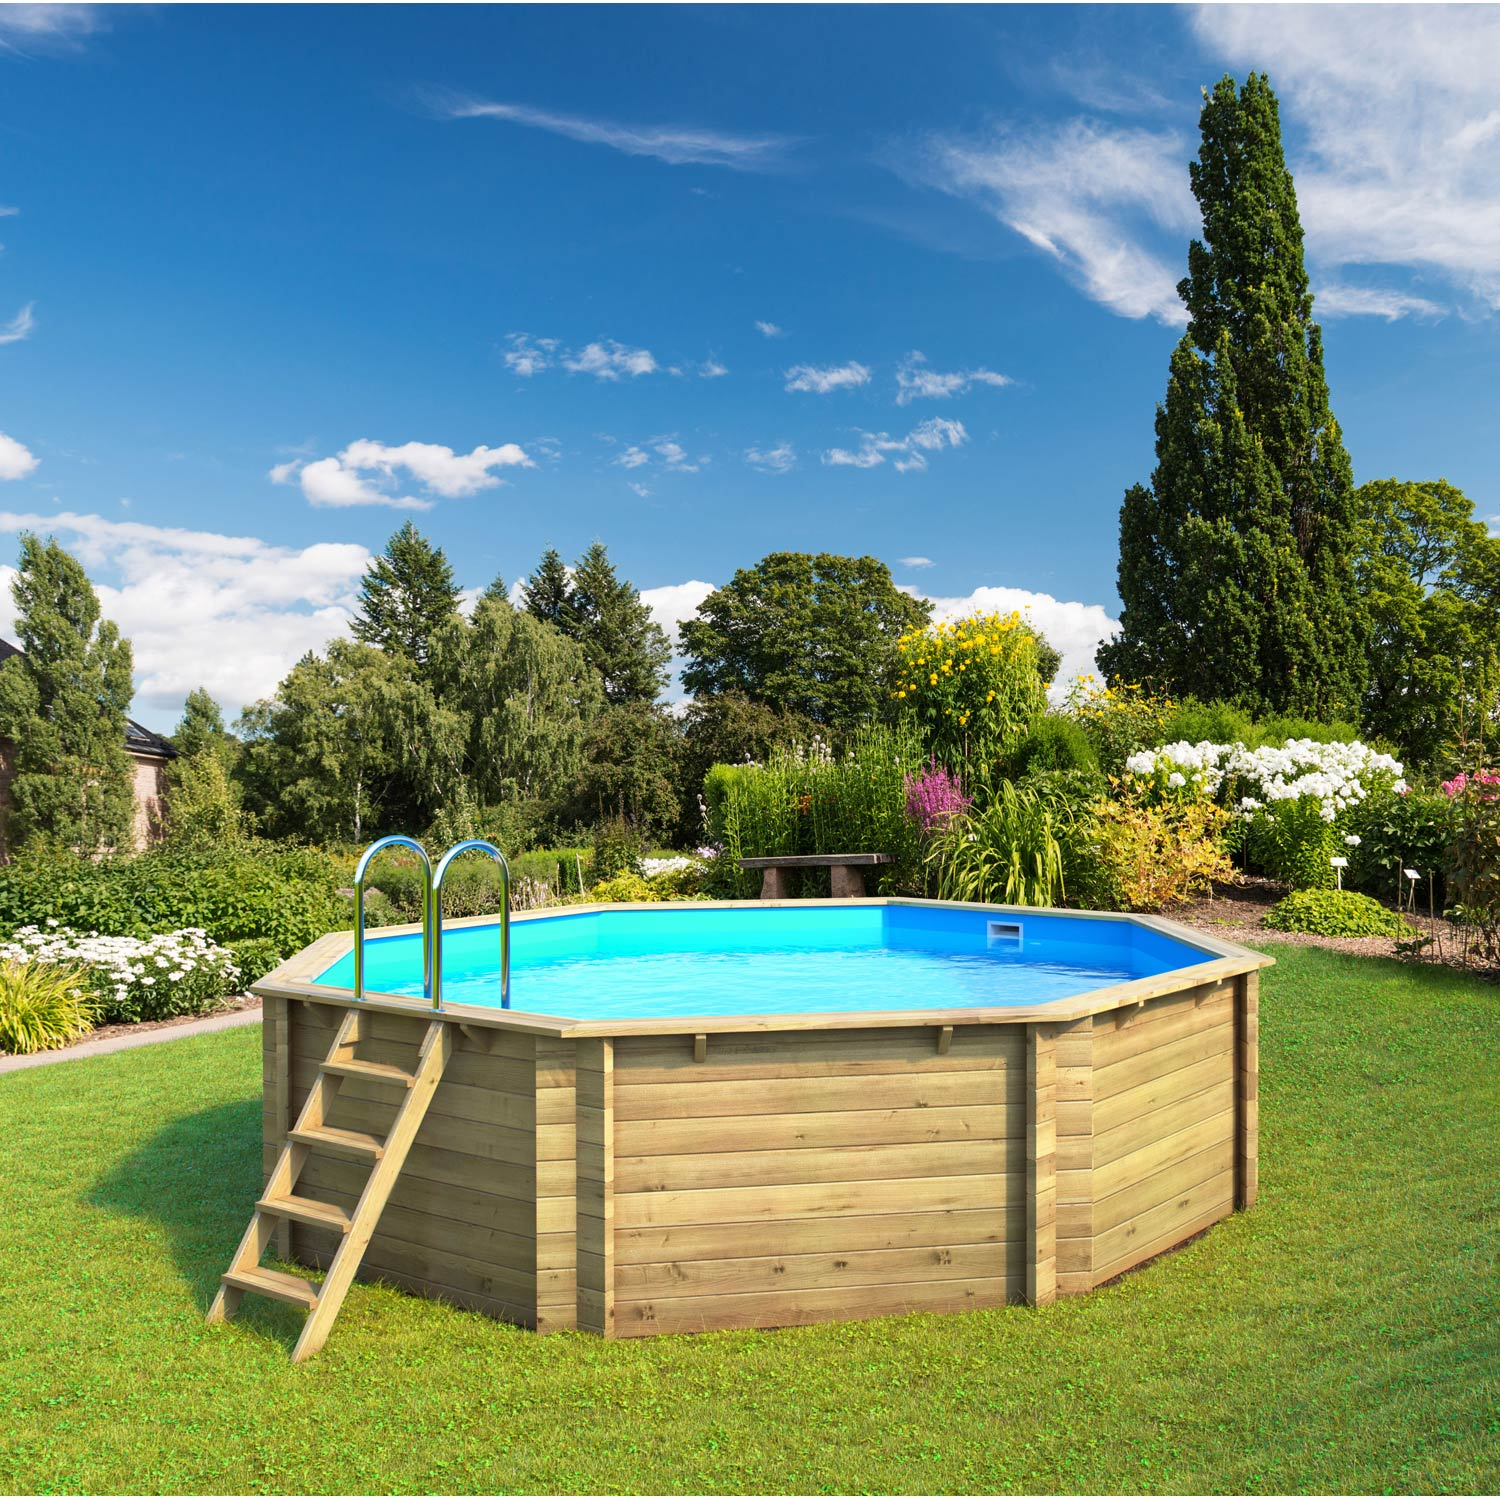 Piscine bois leroy merlin hors sol photos de conception for Piscine en bois leroy merlin